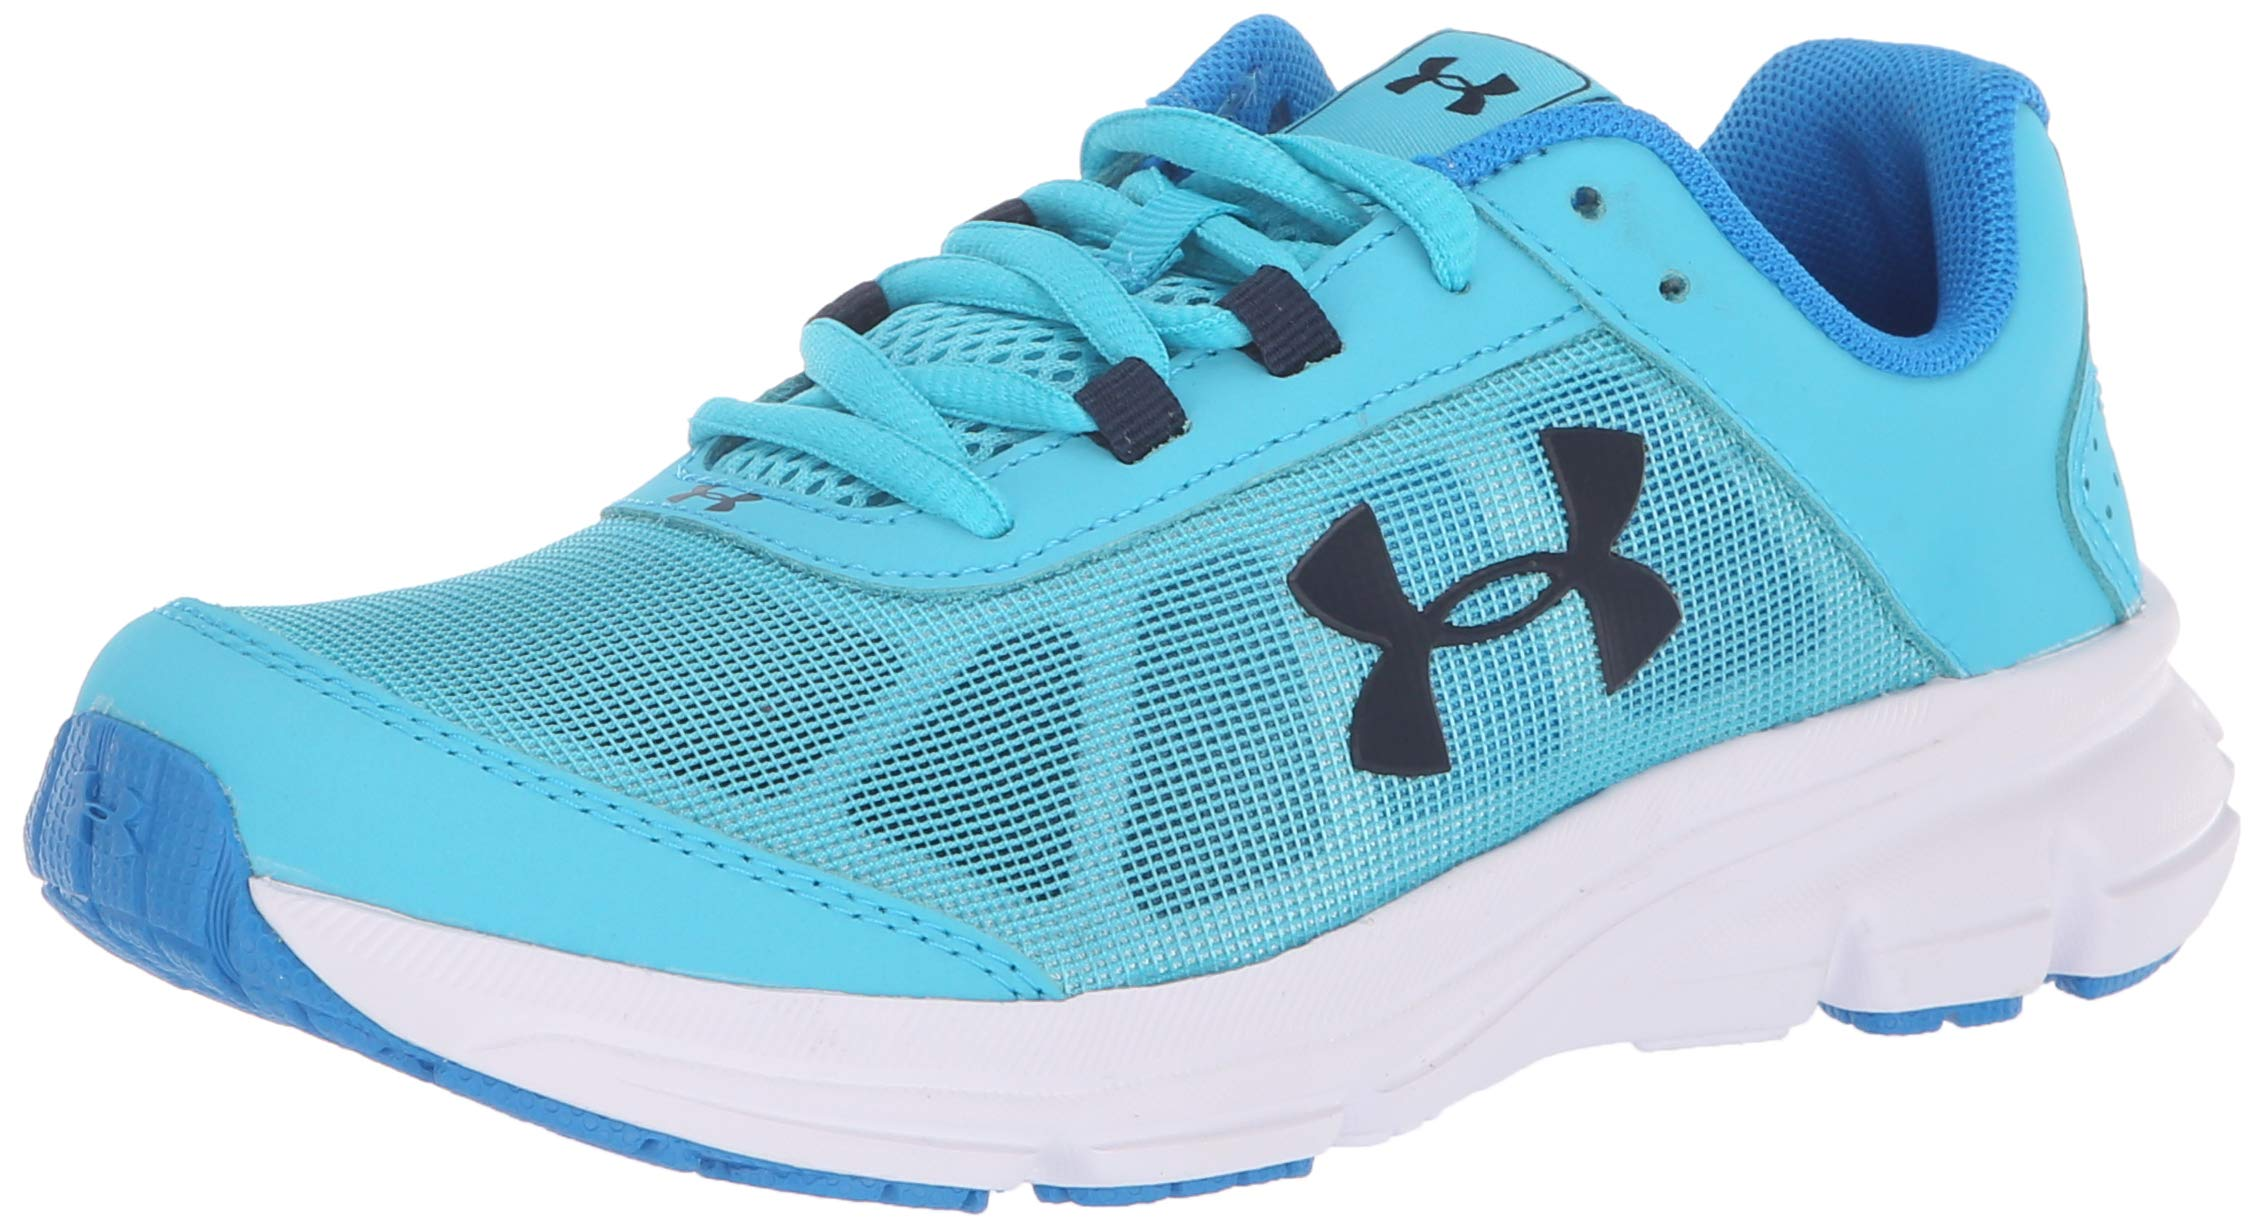 Under Armour Girls' Grade School Rave 2 Sneaker, Alpine (301)/Blue Circuit, 4 by Under Armour (Image #1)